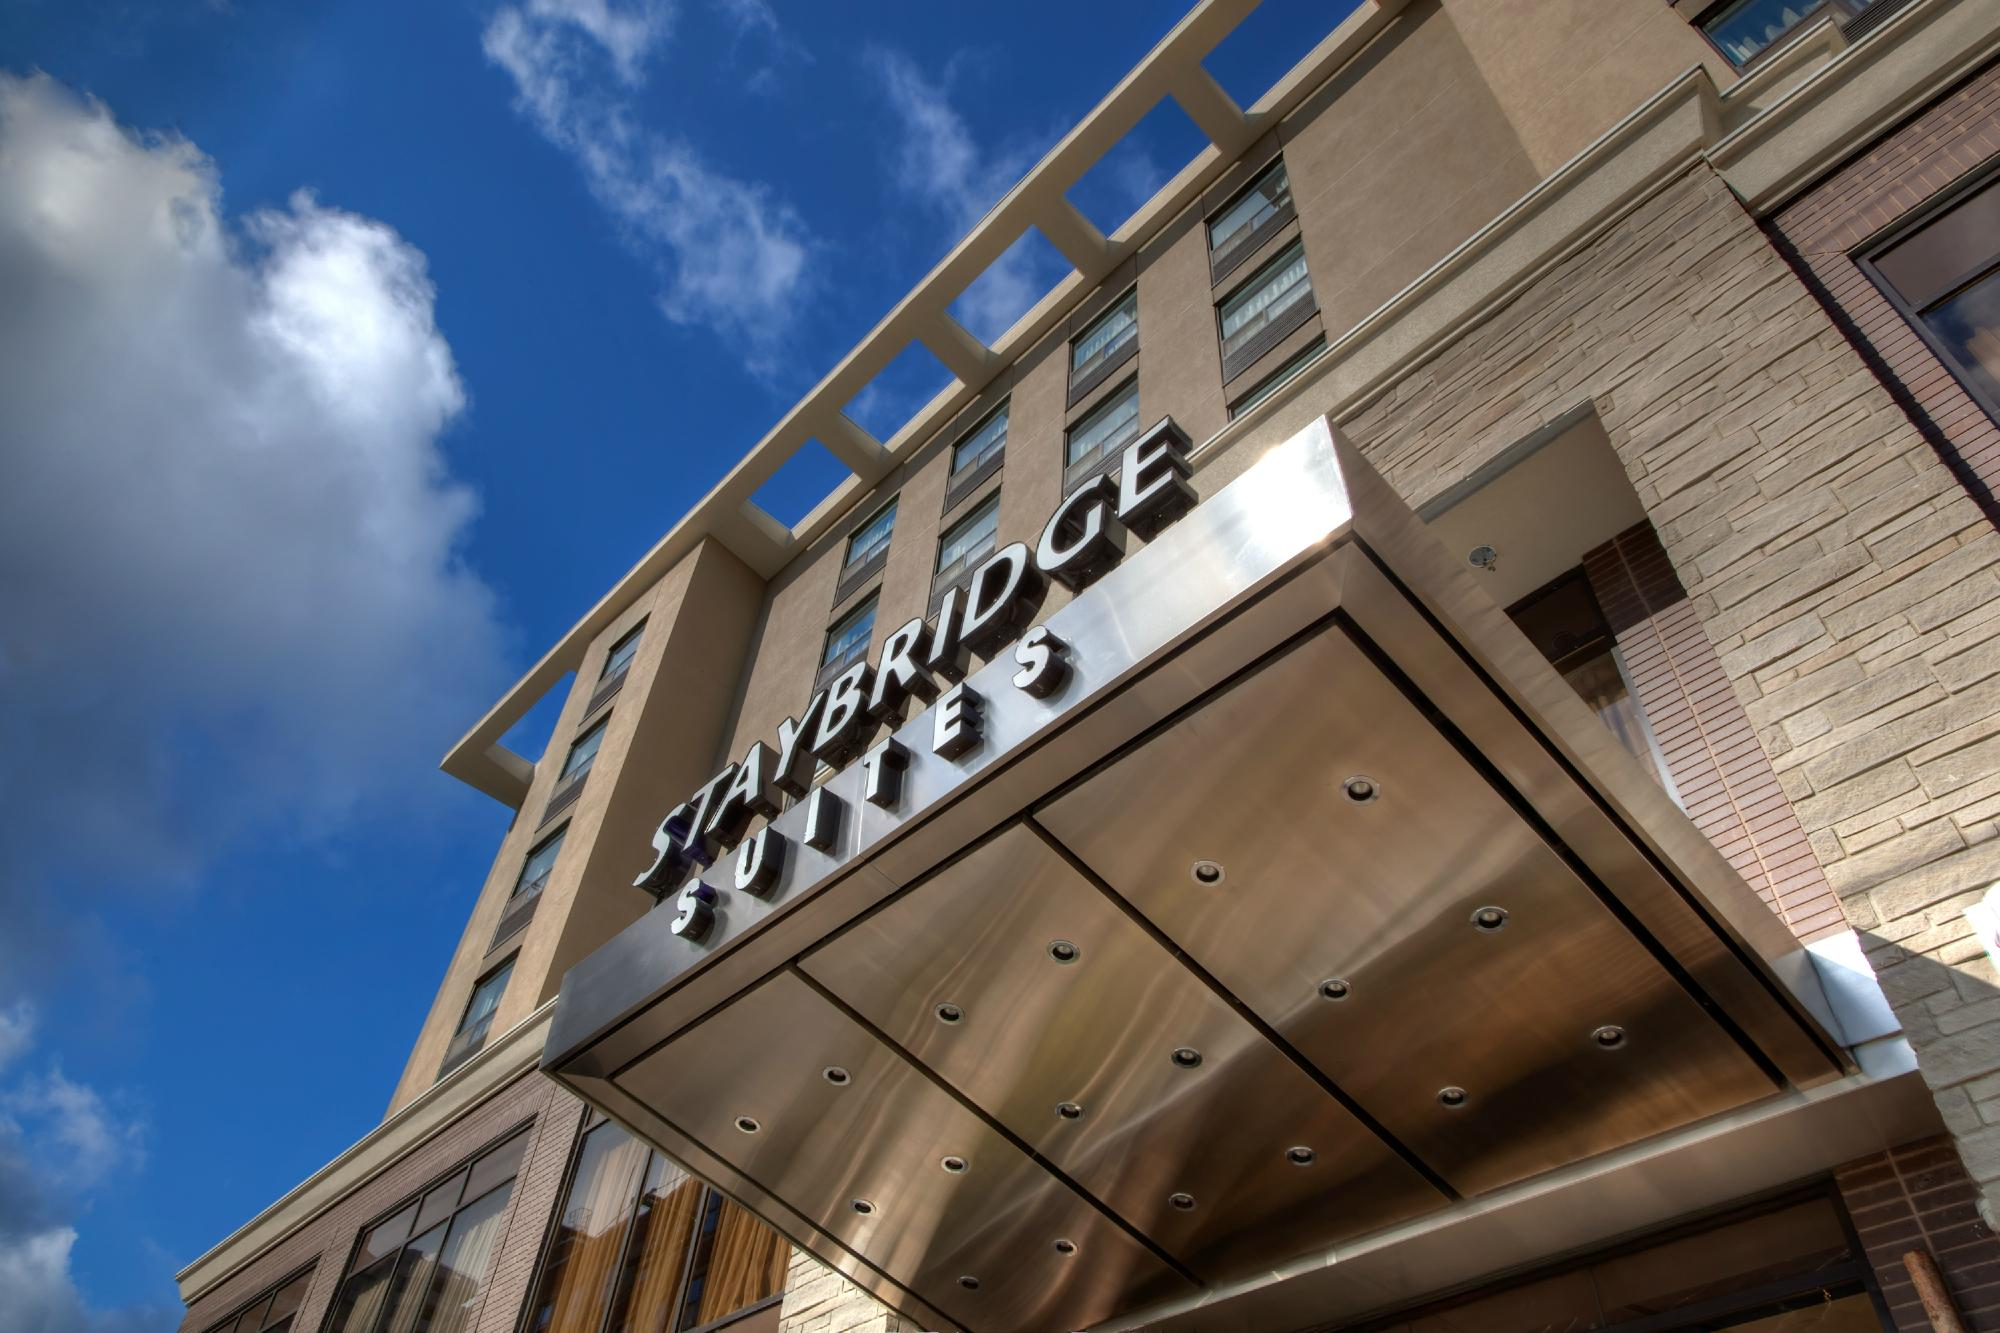 Staybridge Suites Hamilton - Downtown